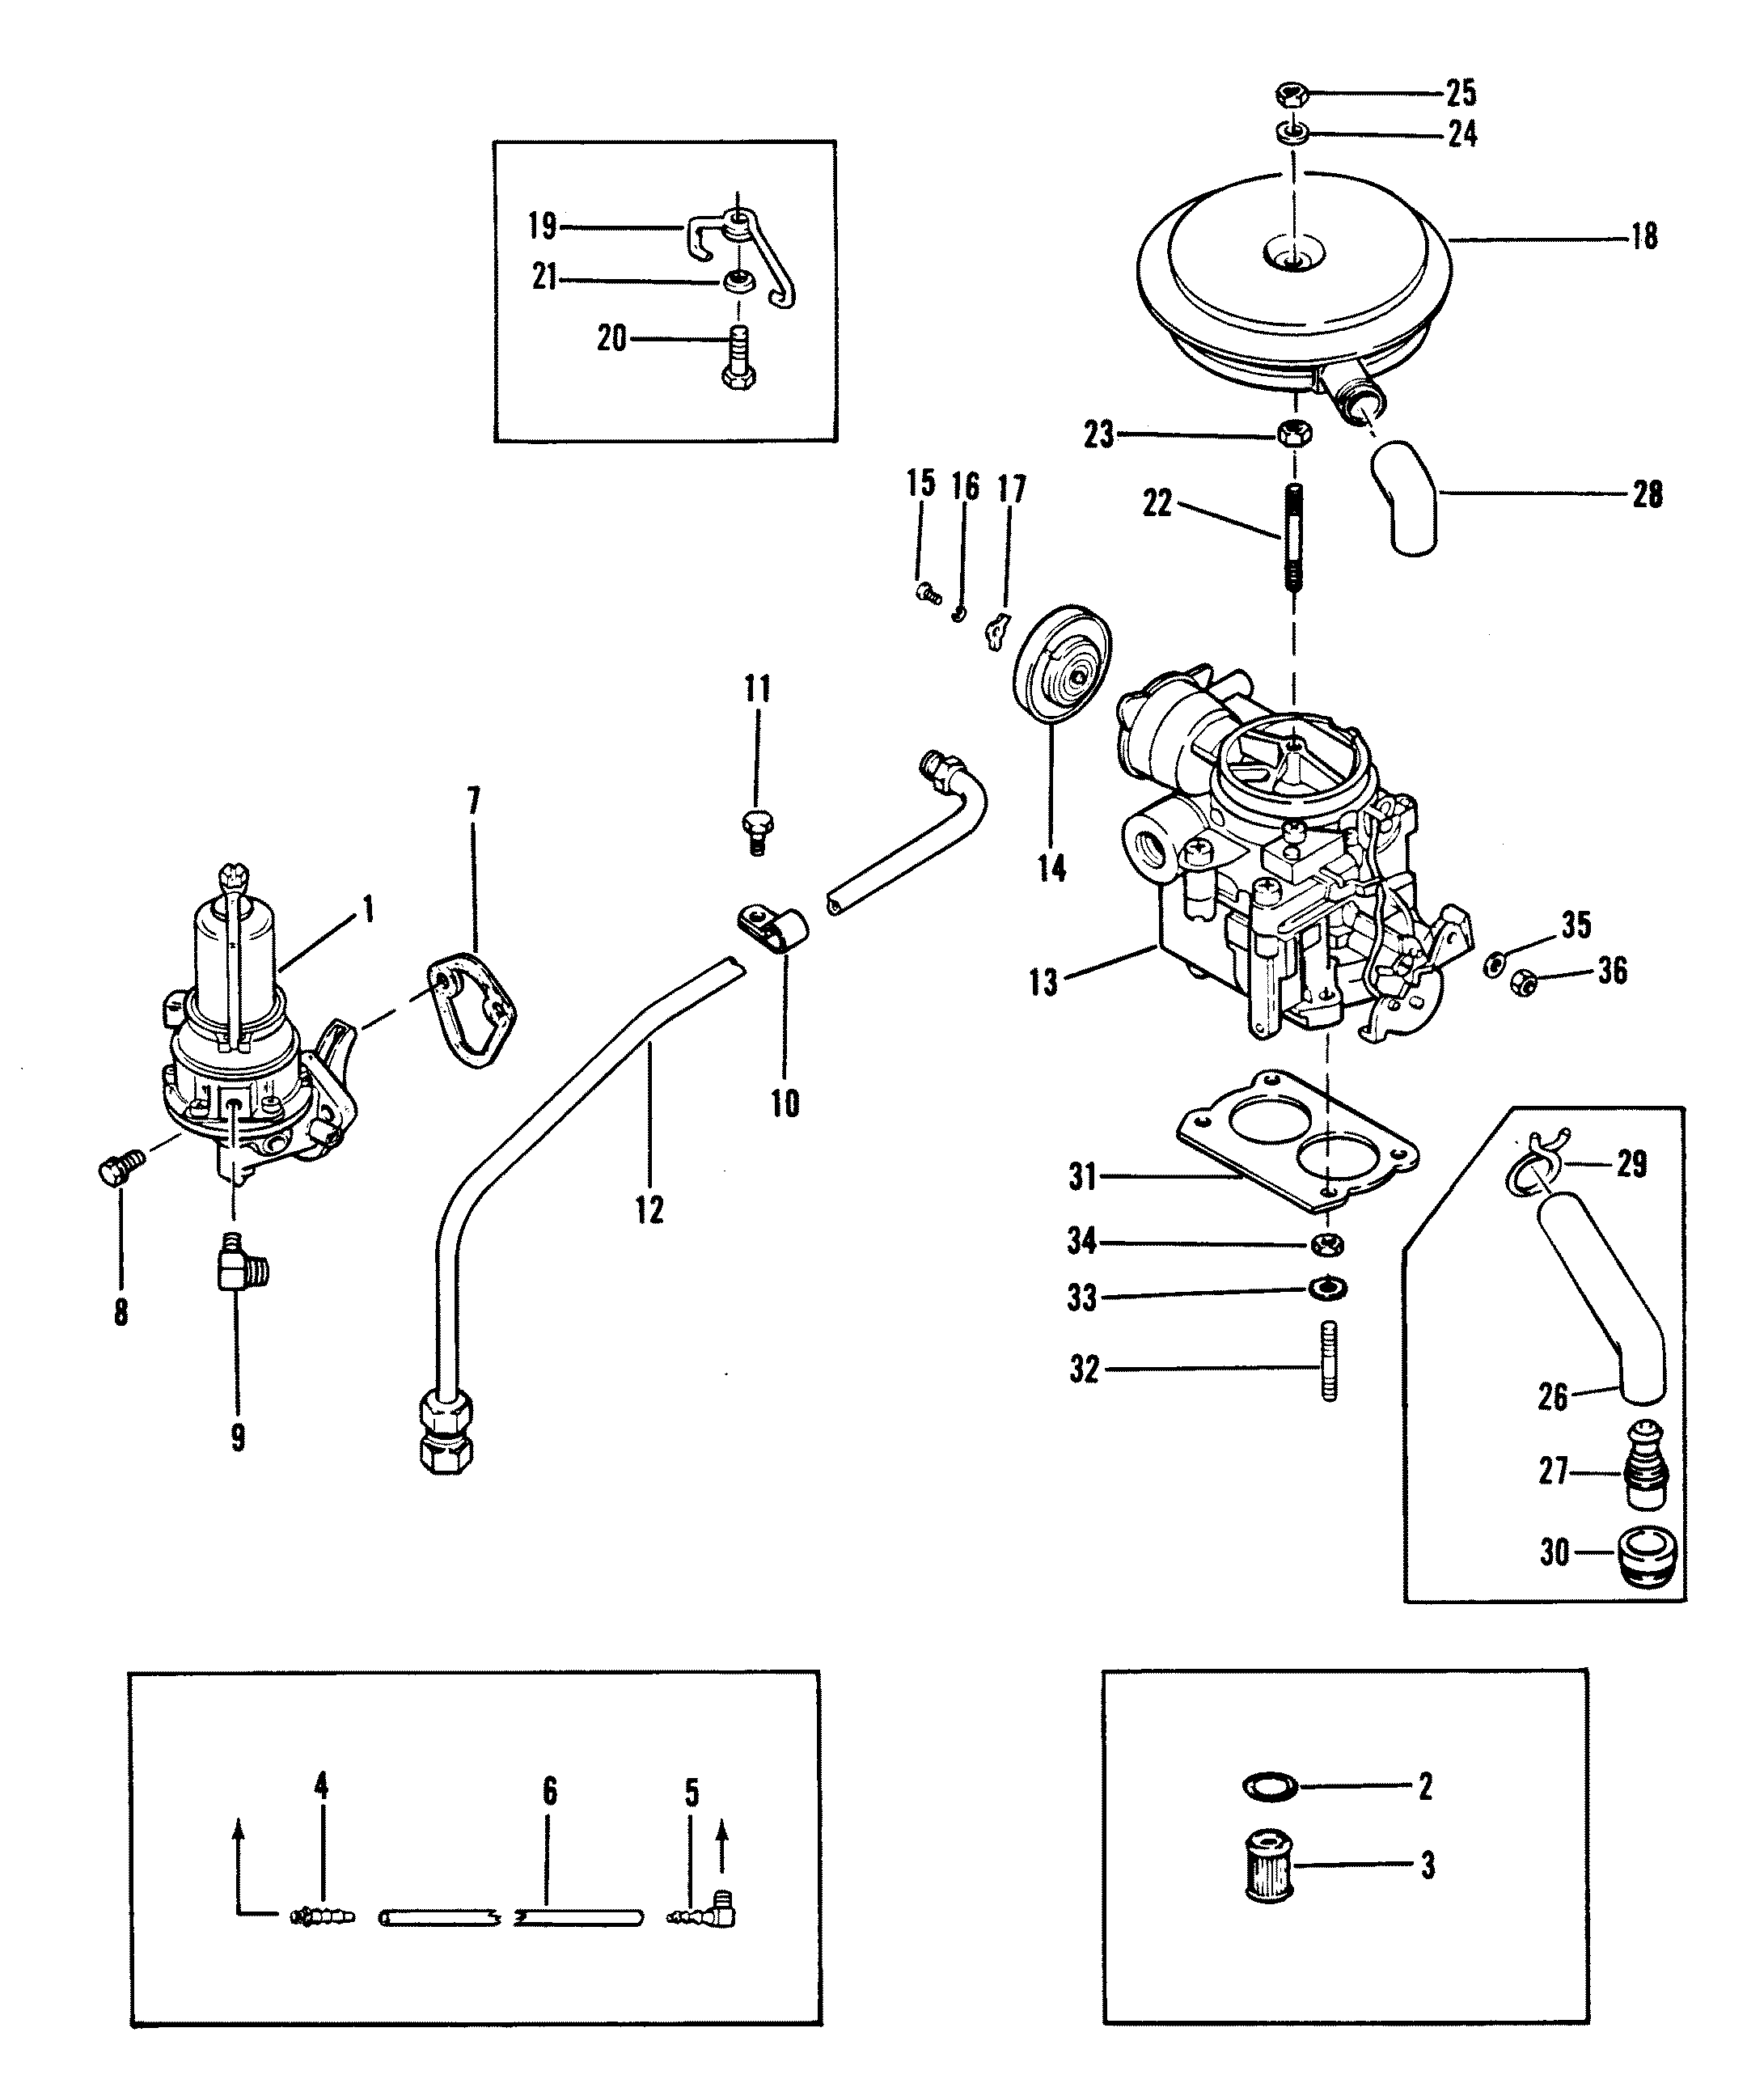 FUEL PUMP AND CARBURETOR OLD DESIGN FOR MERCRUISER 120 H.P